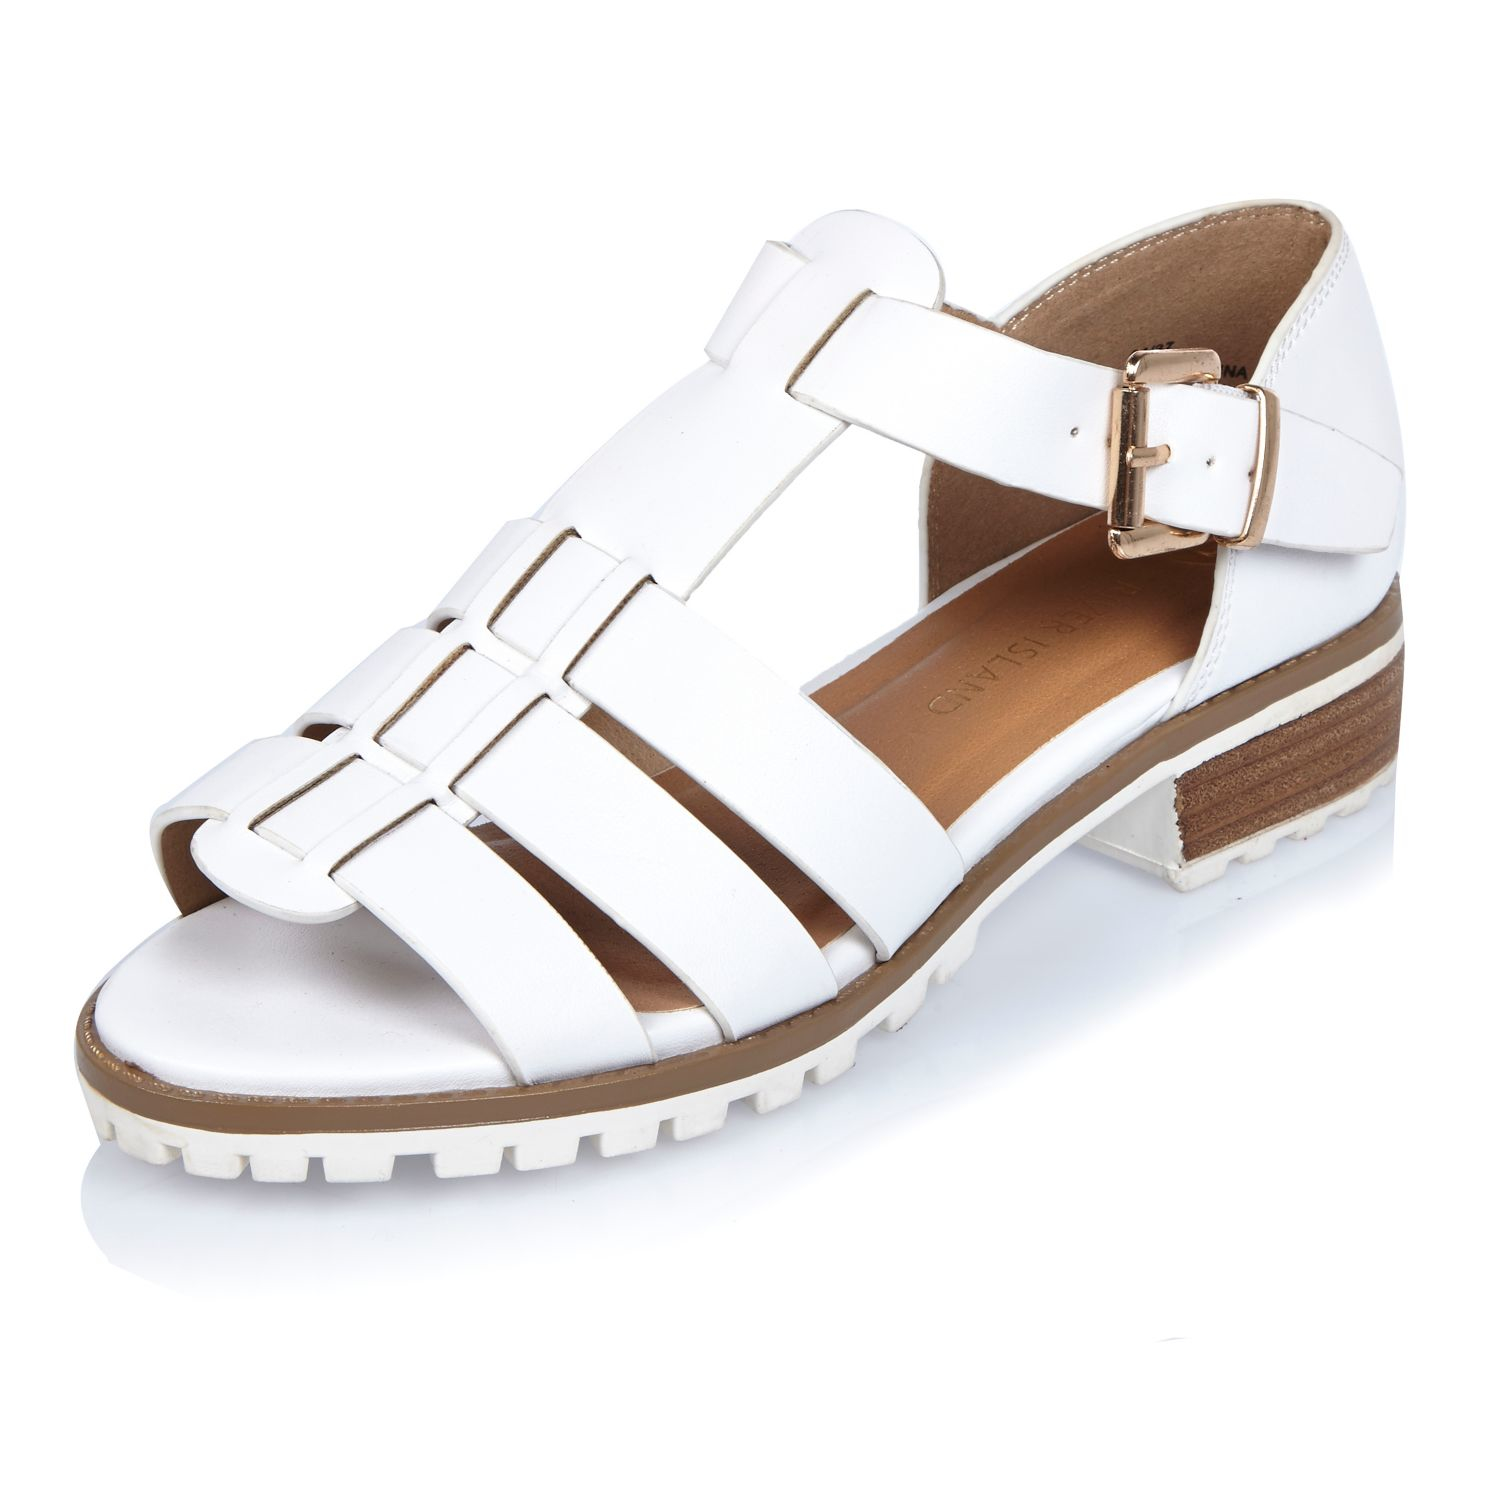 d57493af9e1db7 Lyst - River Island White Strappy Open Toe Geek Shoes in White